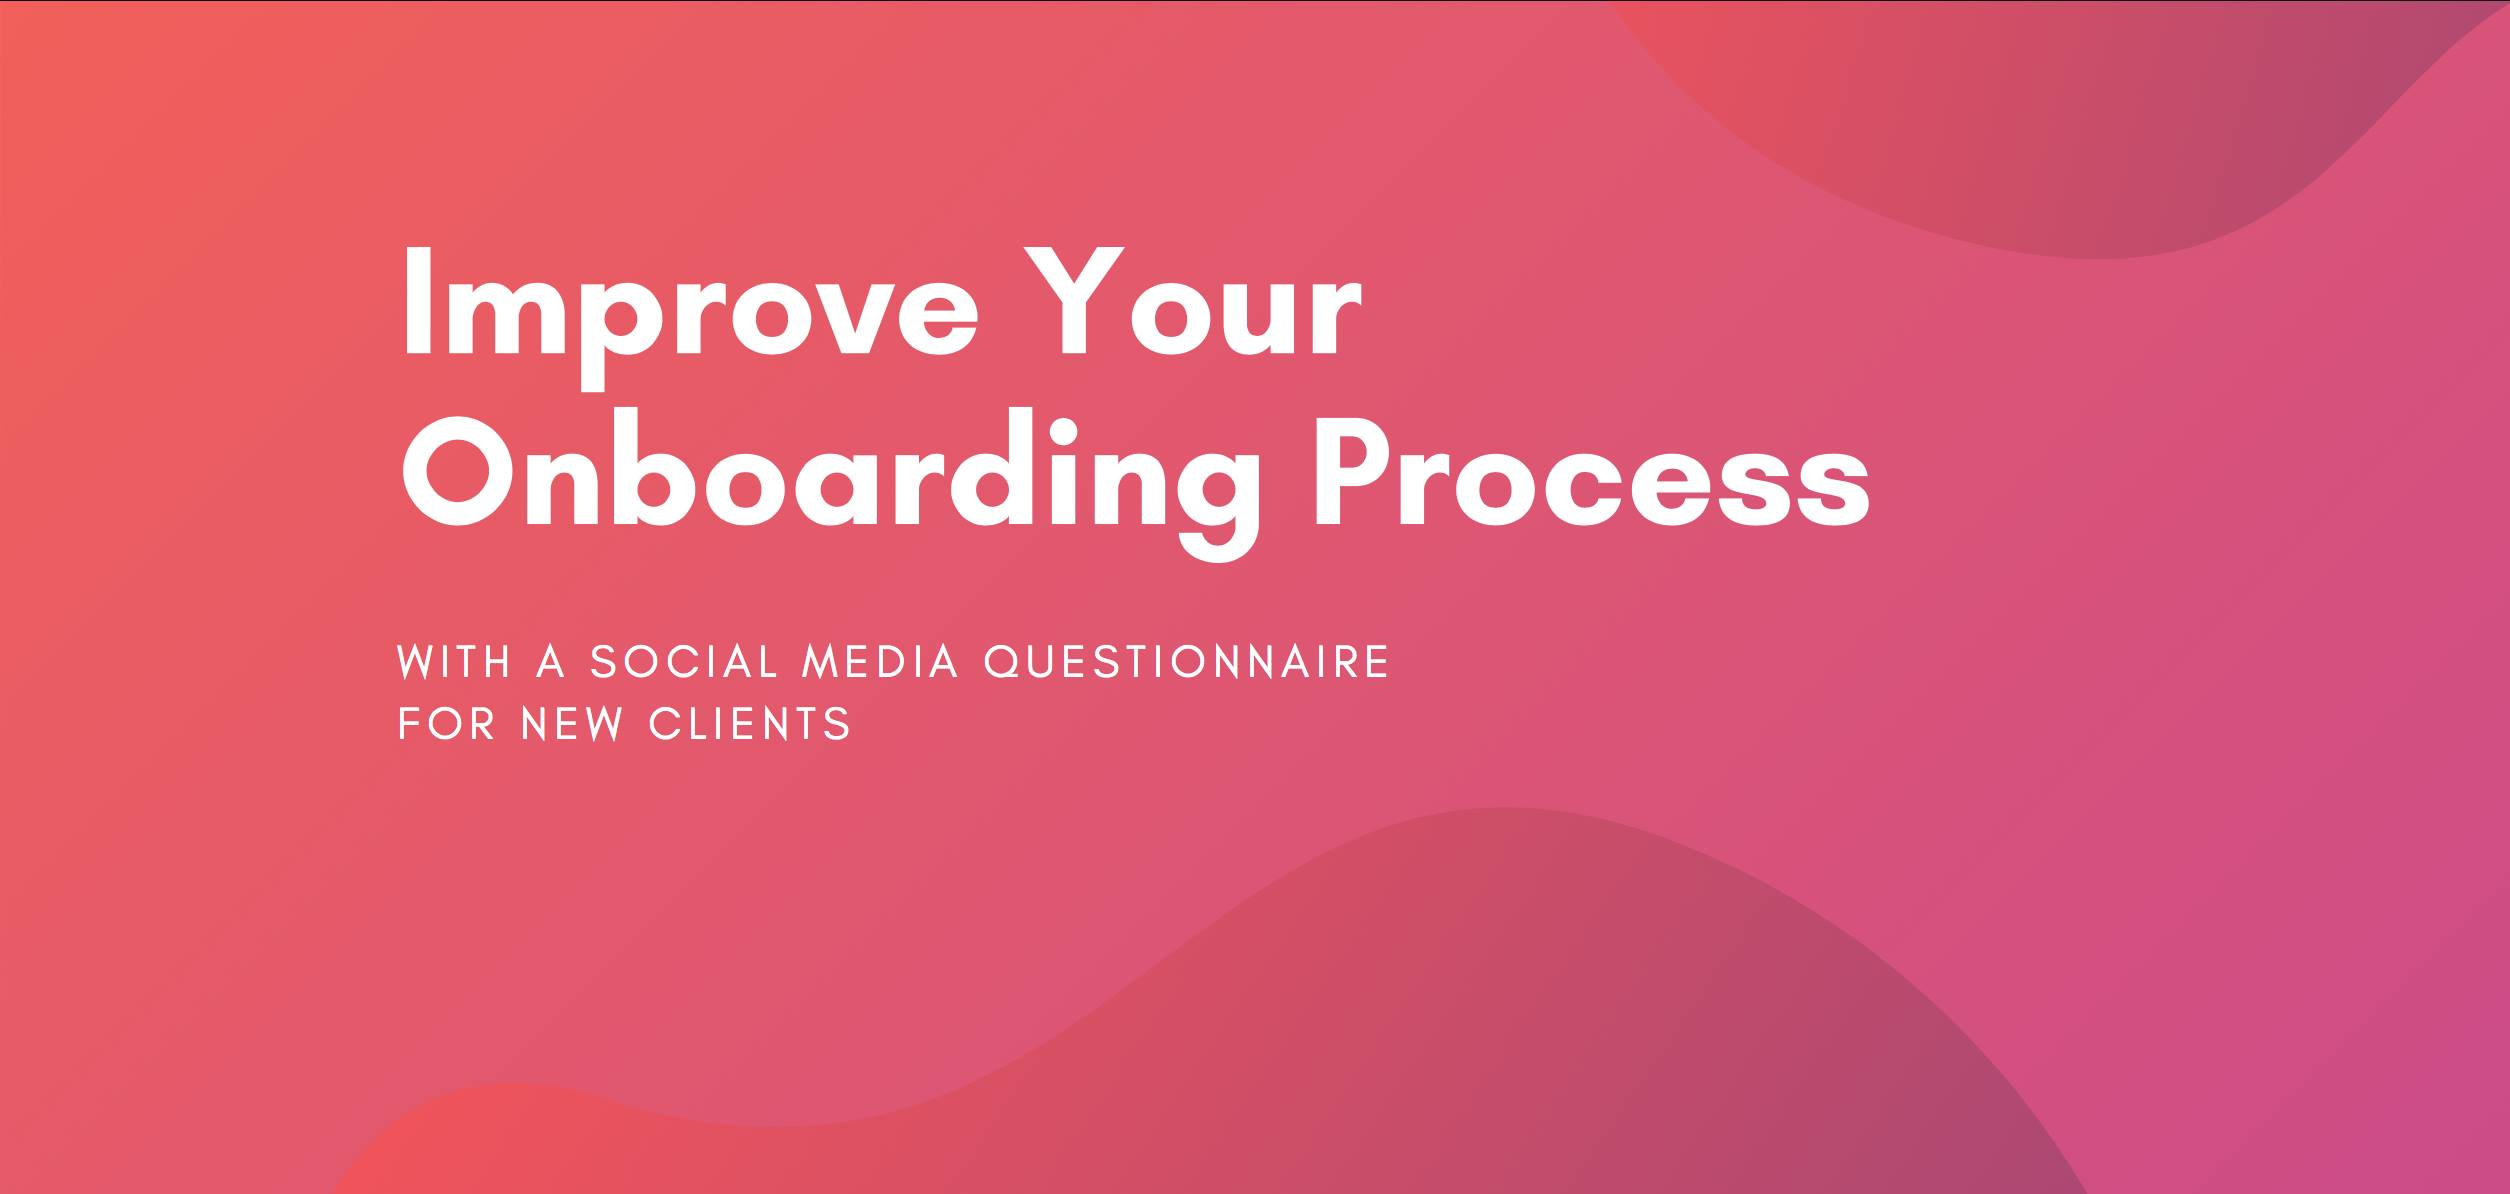 Improve-Your-Onboarding-Process